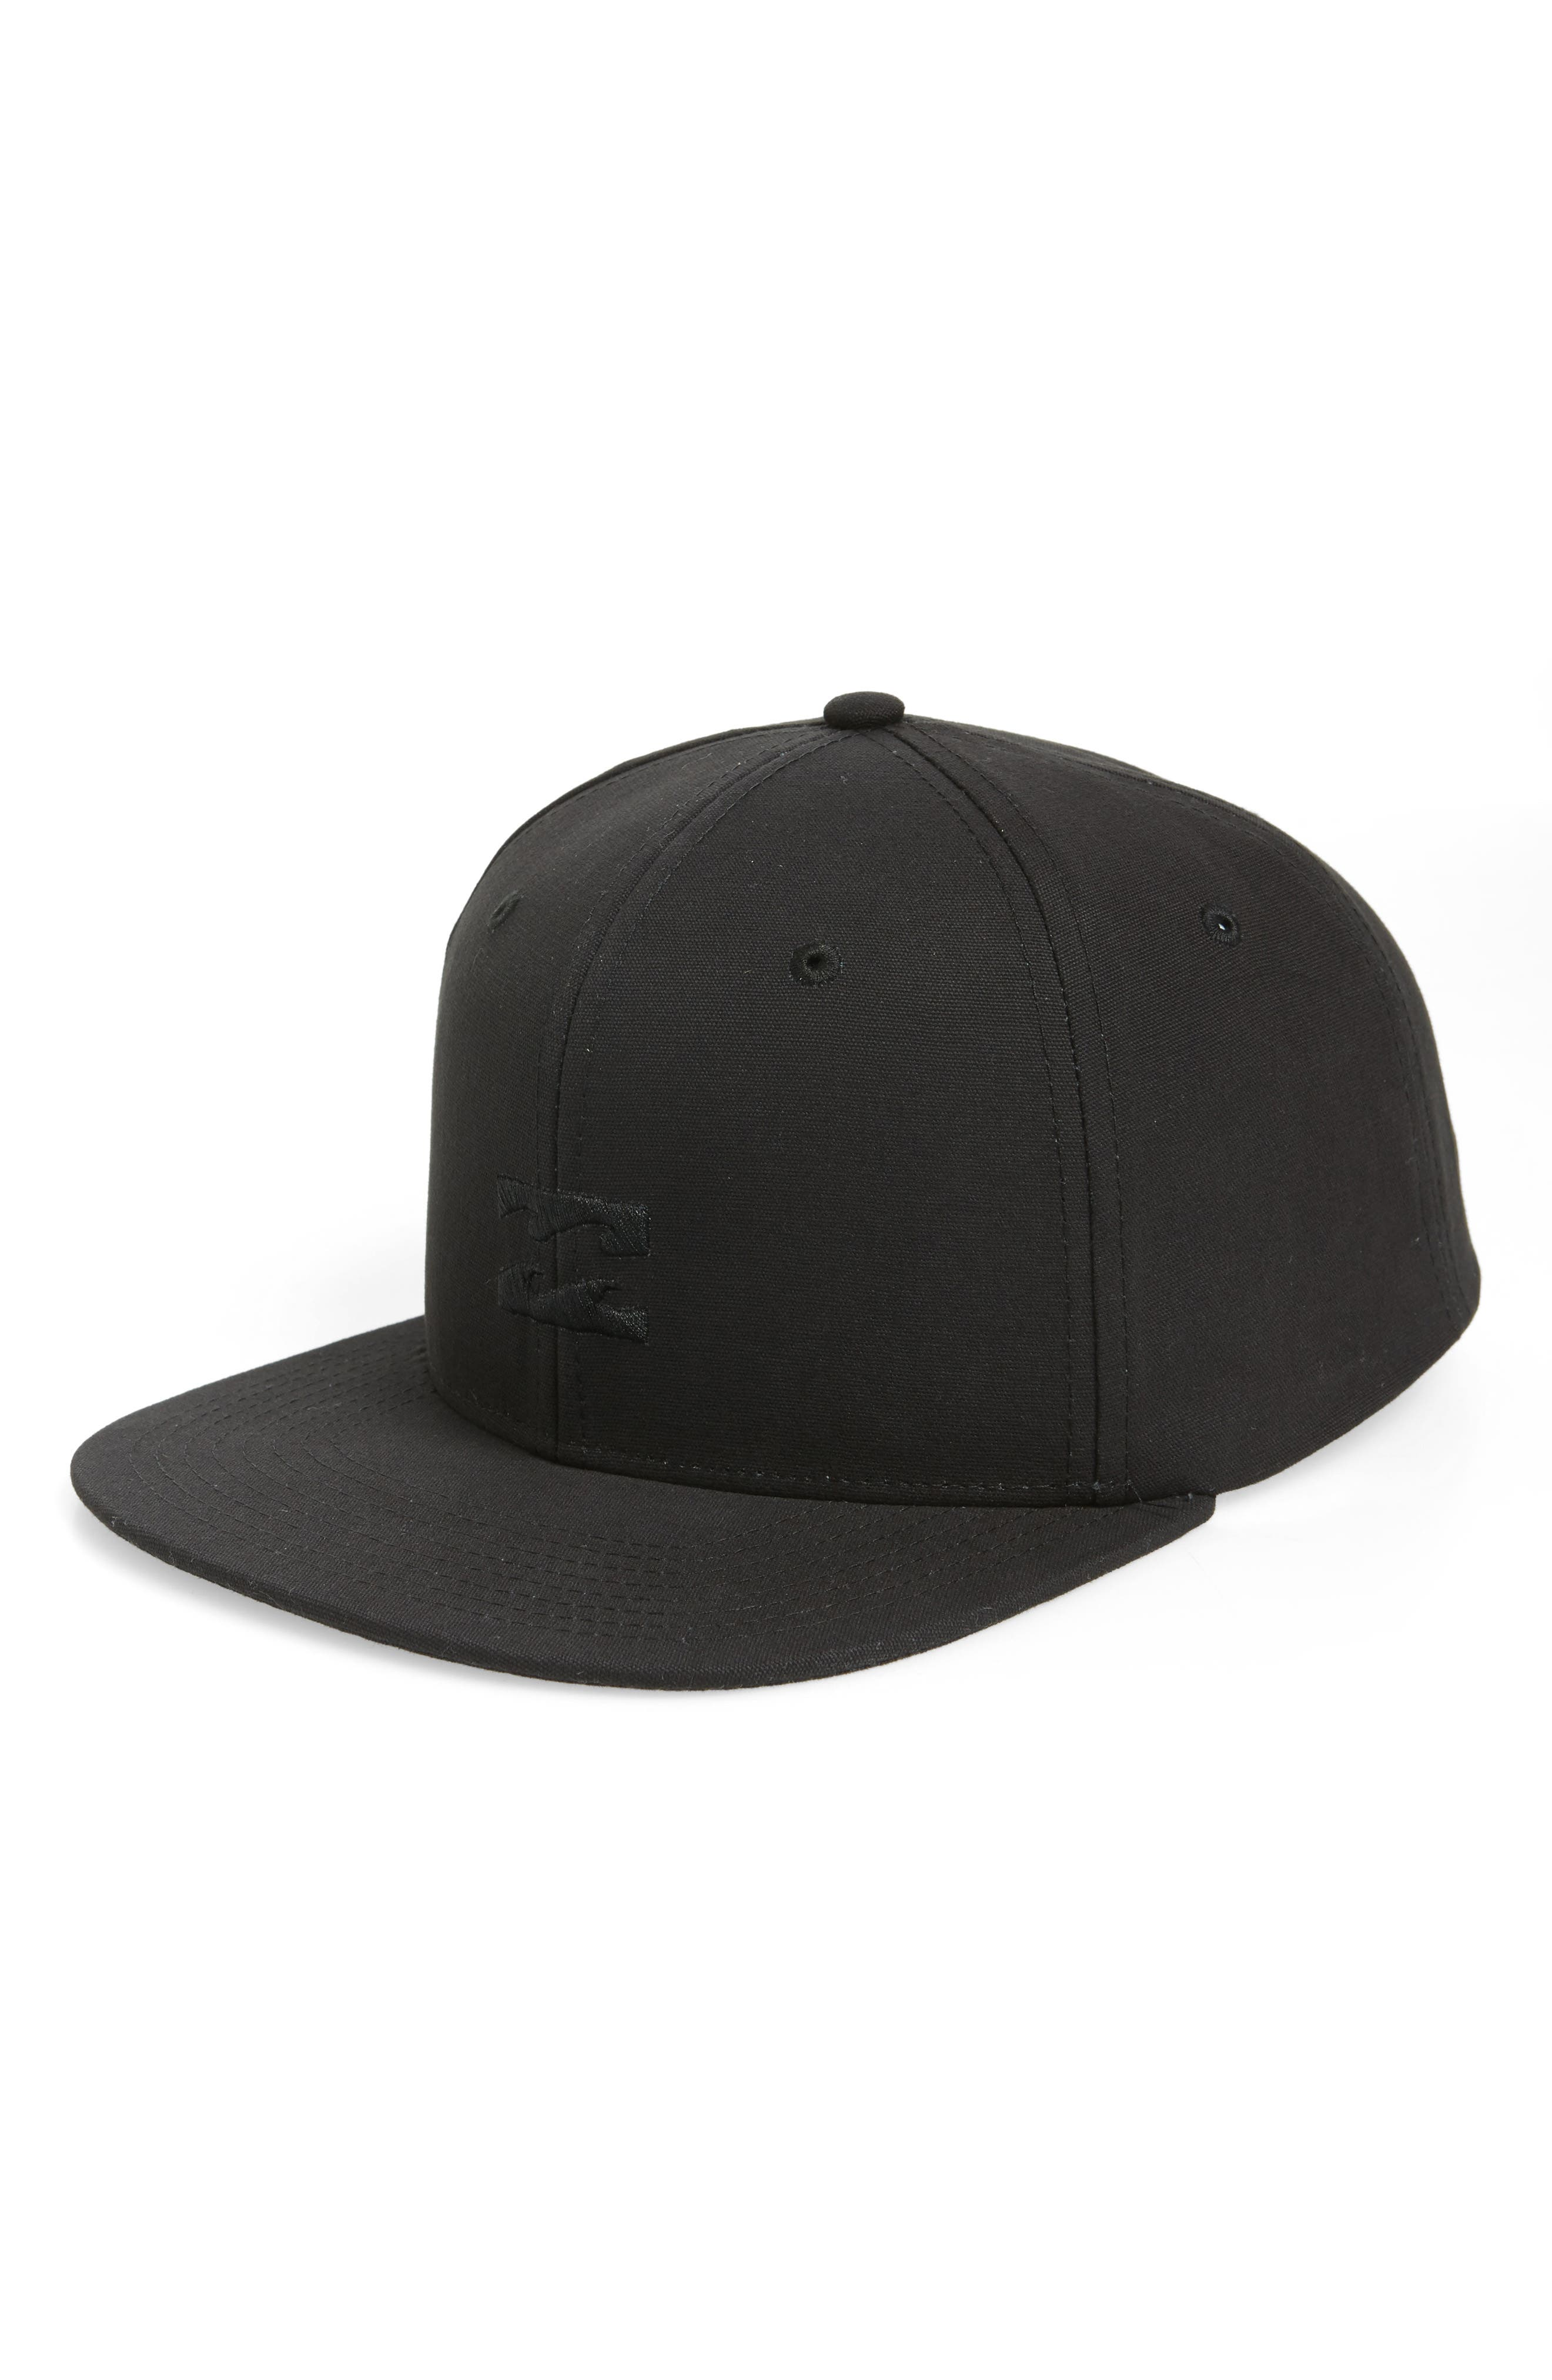 All Day Snapback Baseball Cap,                             Main thumbnail 1, color,                             Stealth